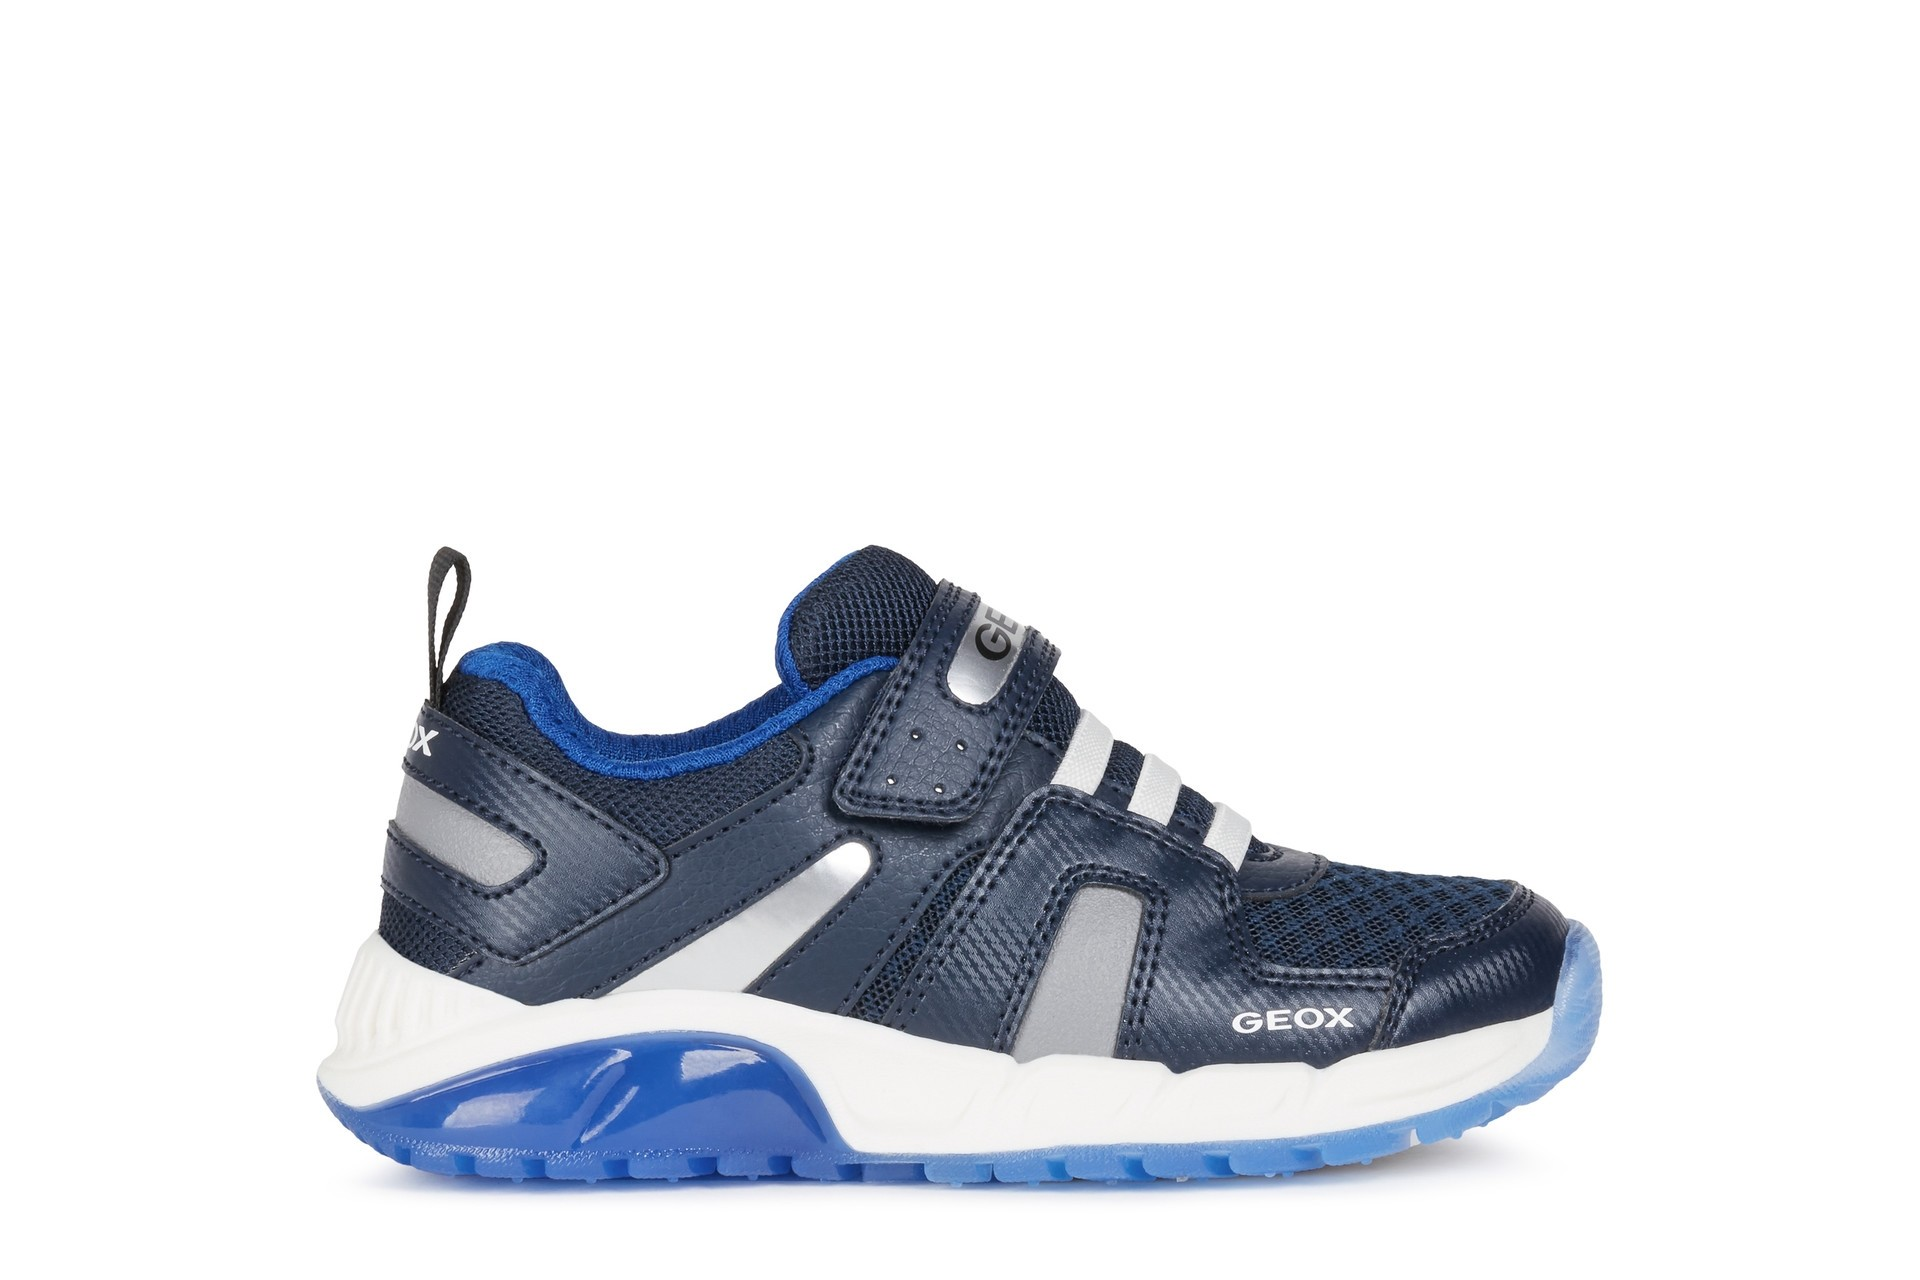 Geox Boys Light-Up Trainer   J SPAZIALE   Navy Royal